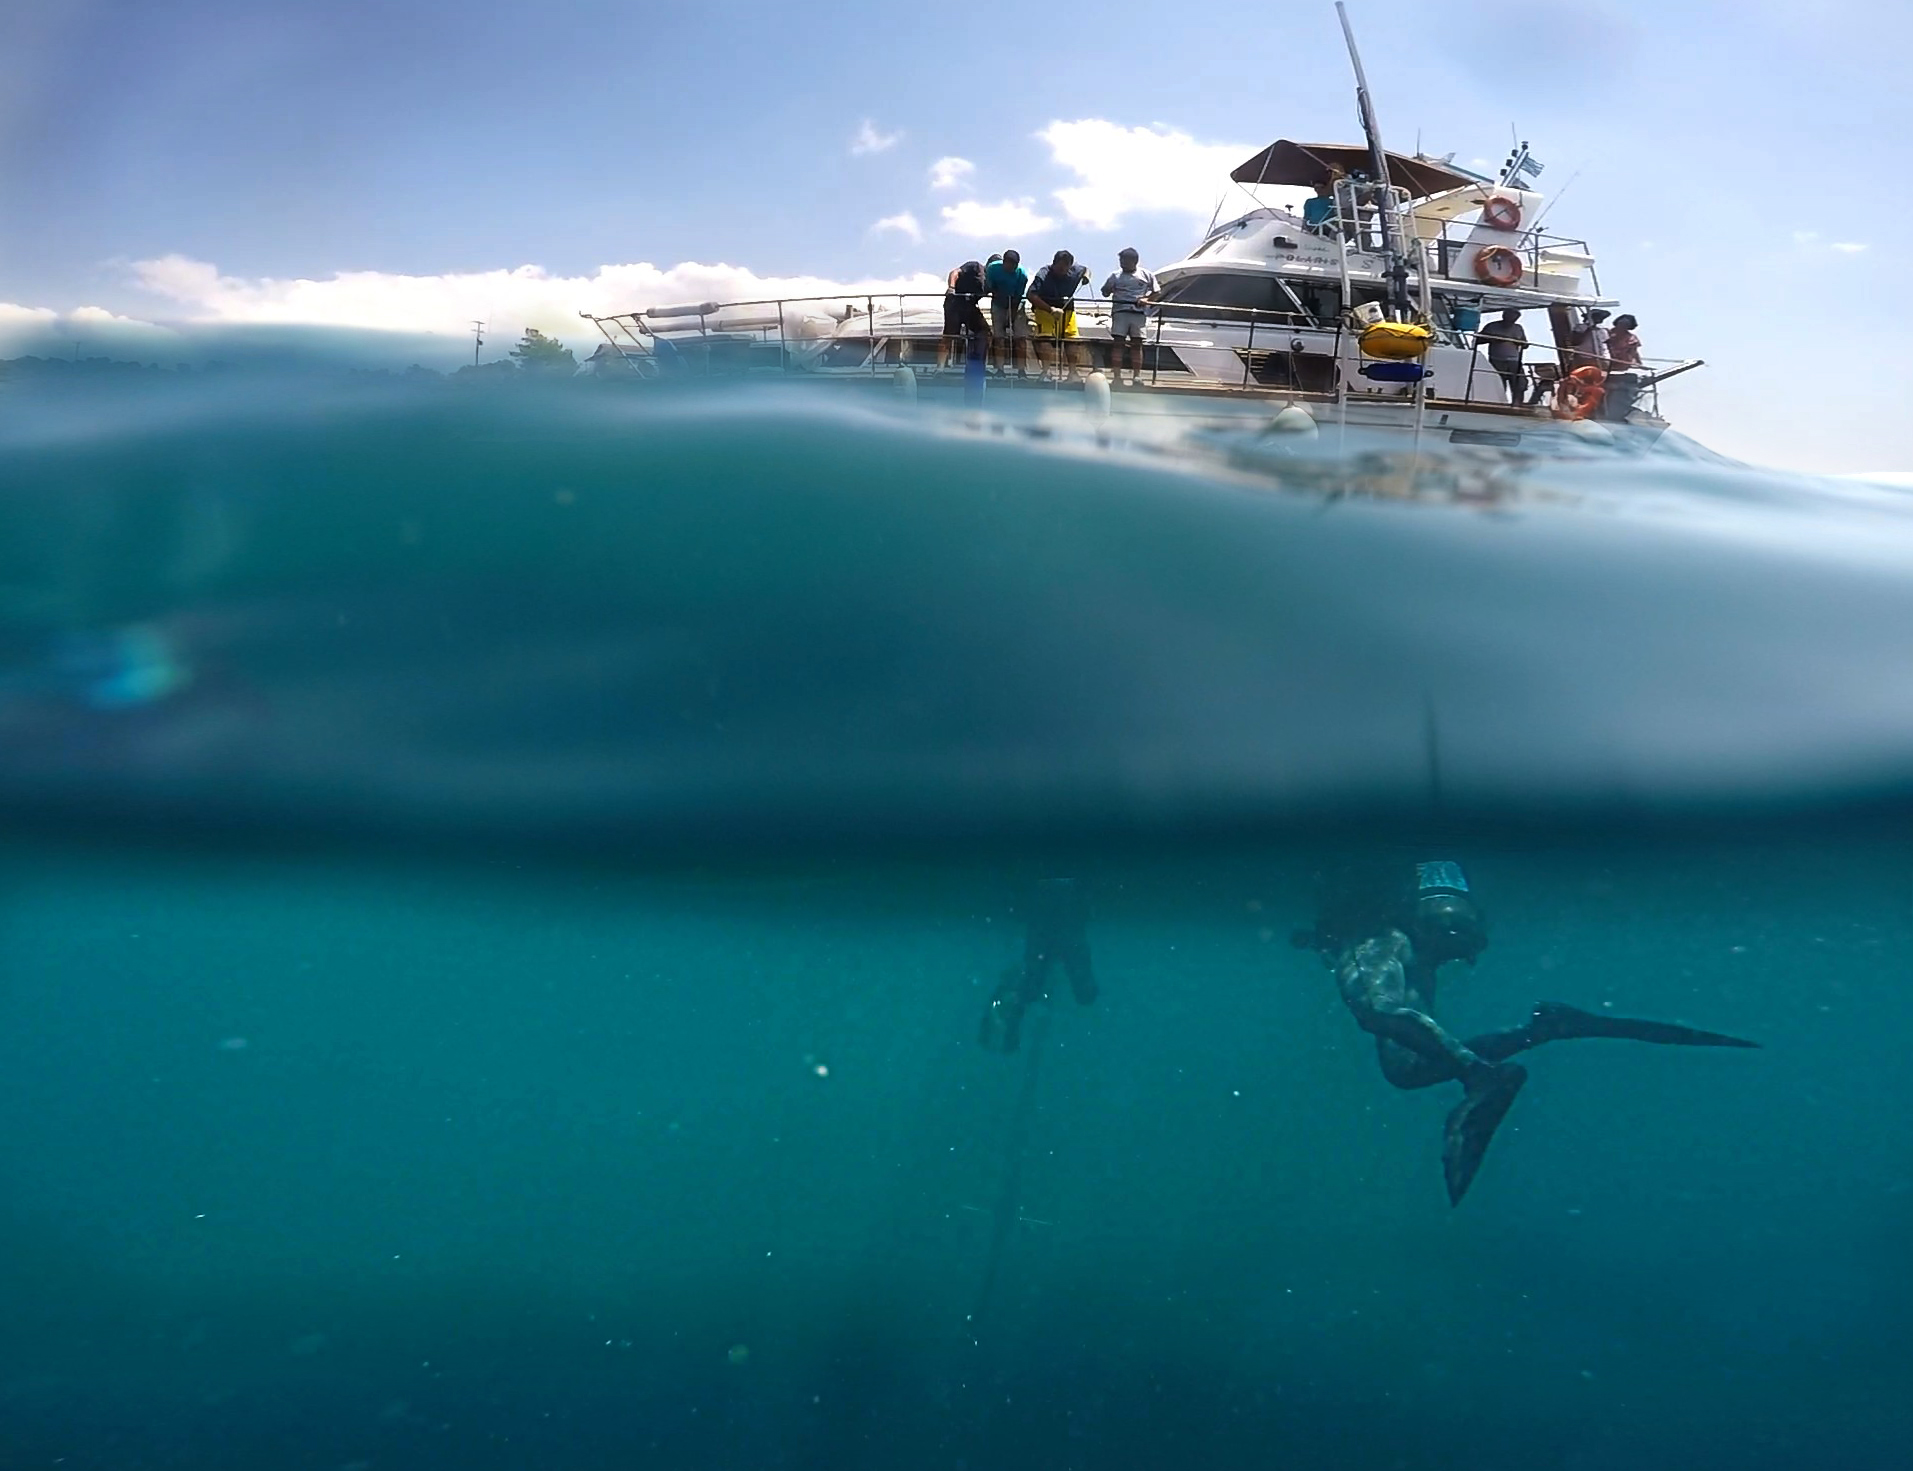 Divers below the research yacht